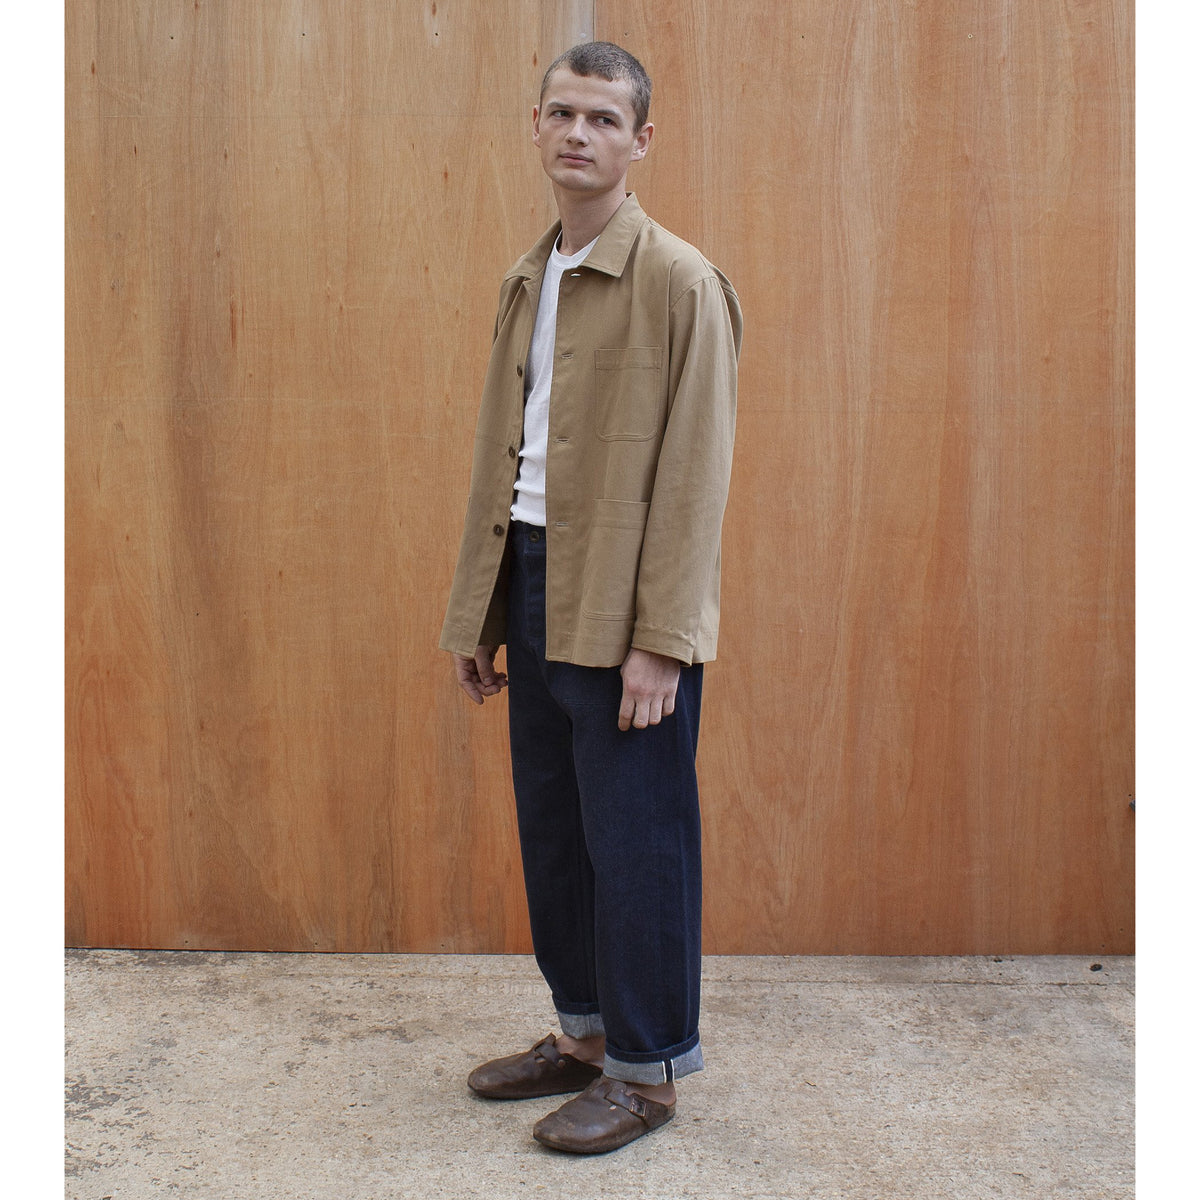 a young man standing against a wooden wall wearing a traditional chore jacket made in a sustainable tan brushed cotton canvas  Edit alt text